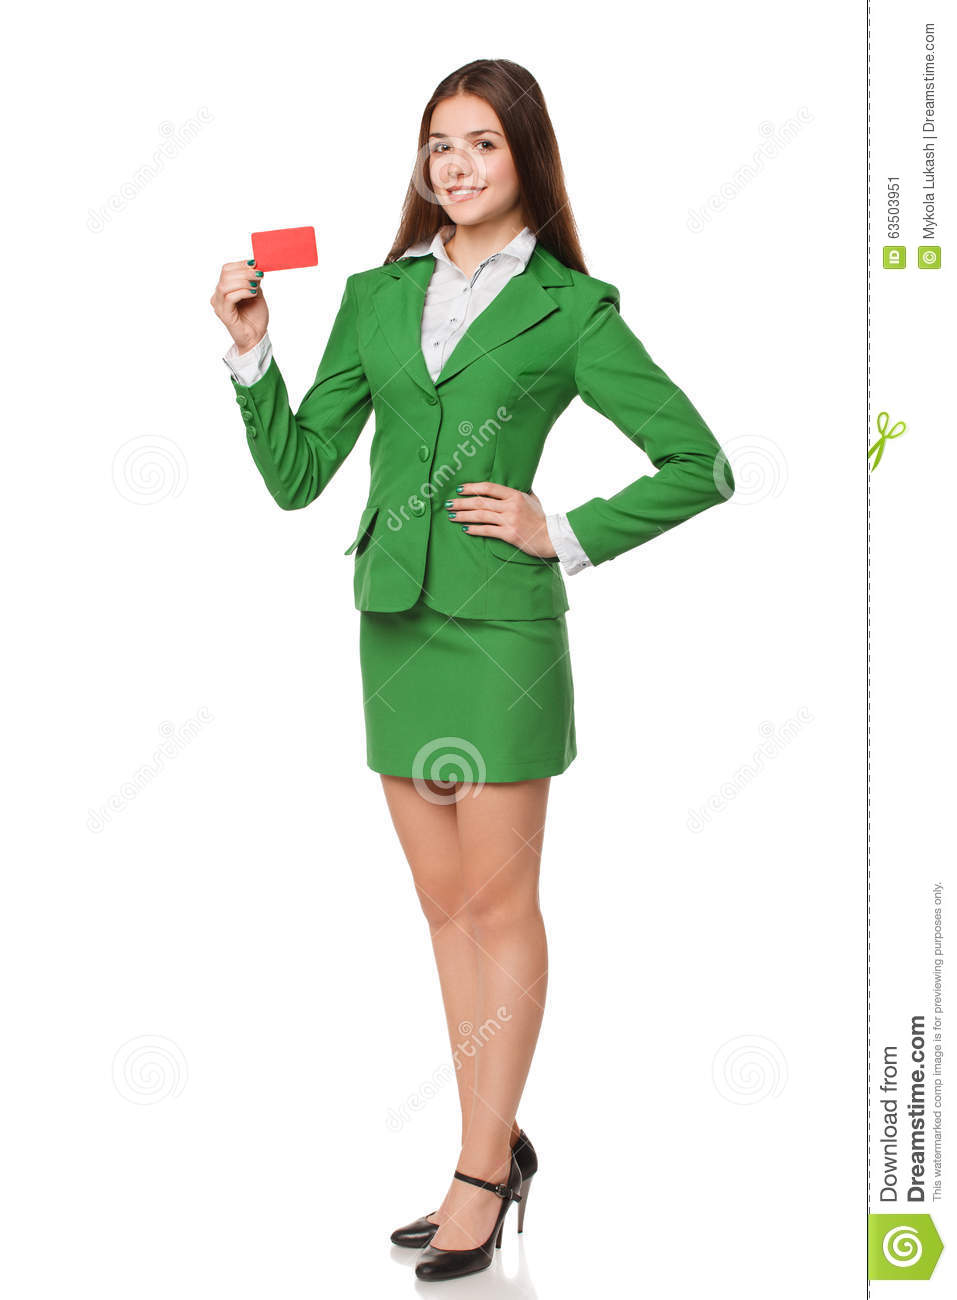 full-length-smiling-business-woman-showi